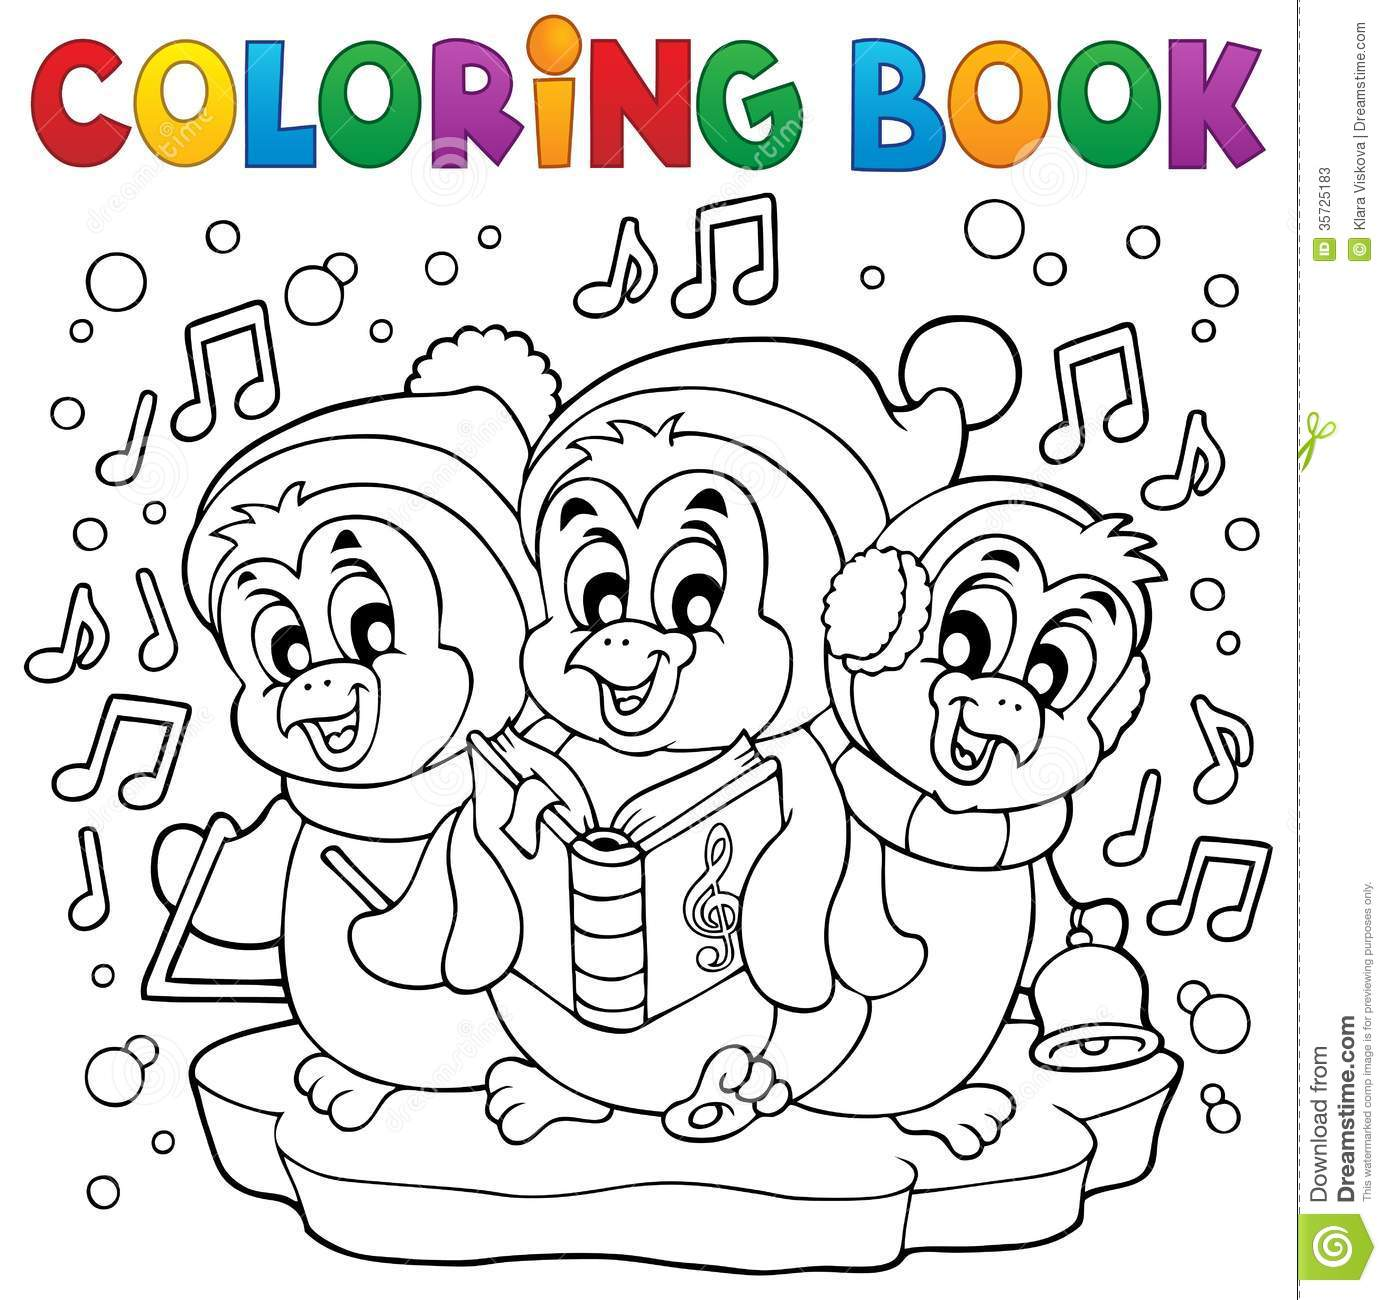 Coloring Book Cute Penguins 4 Stock Vector